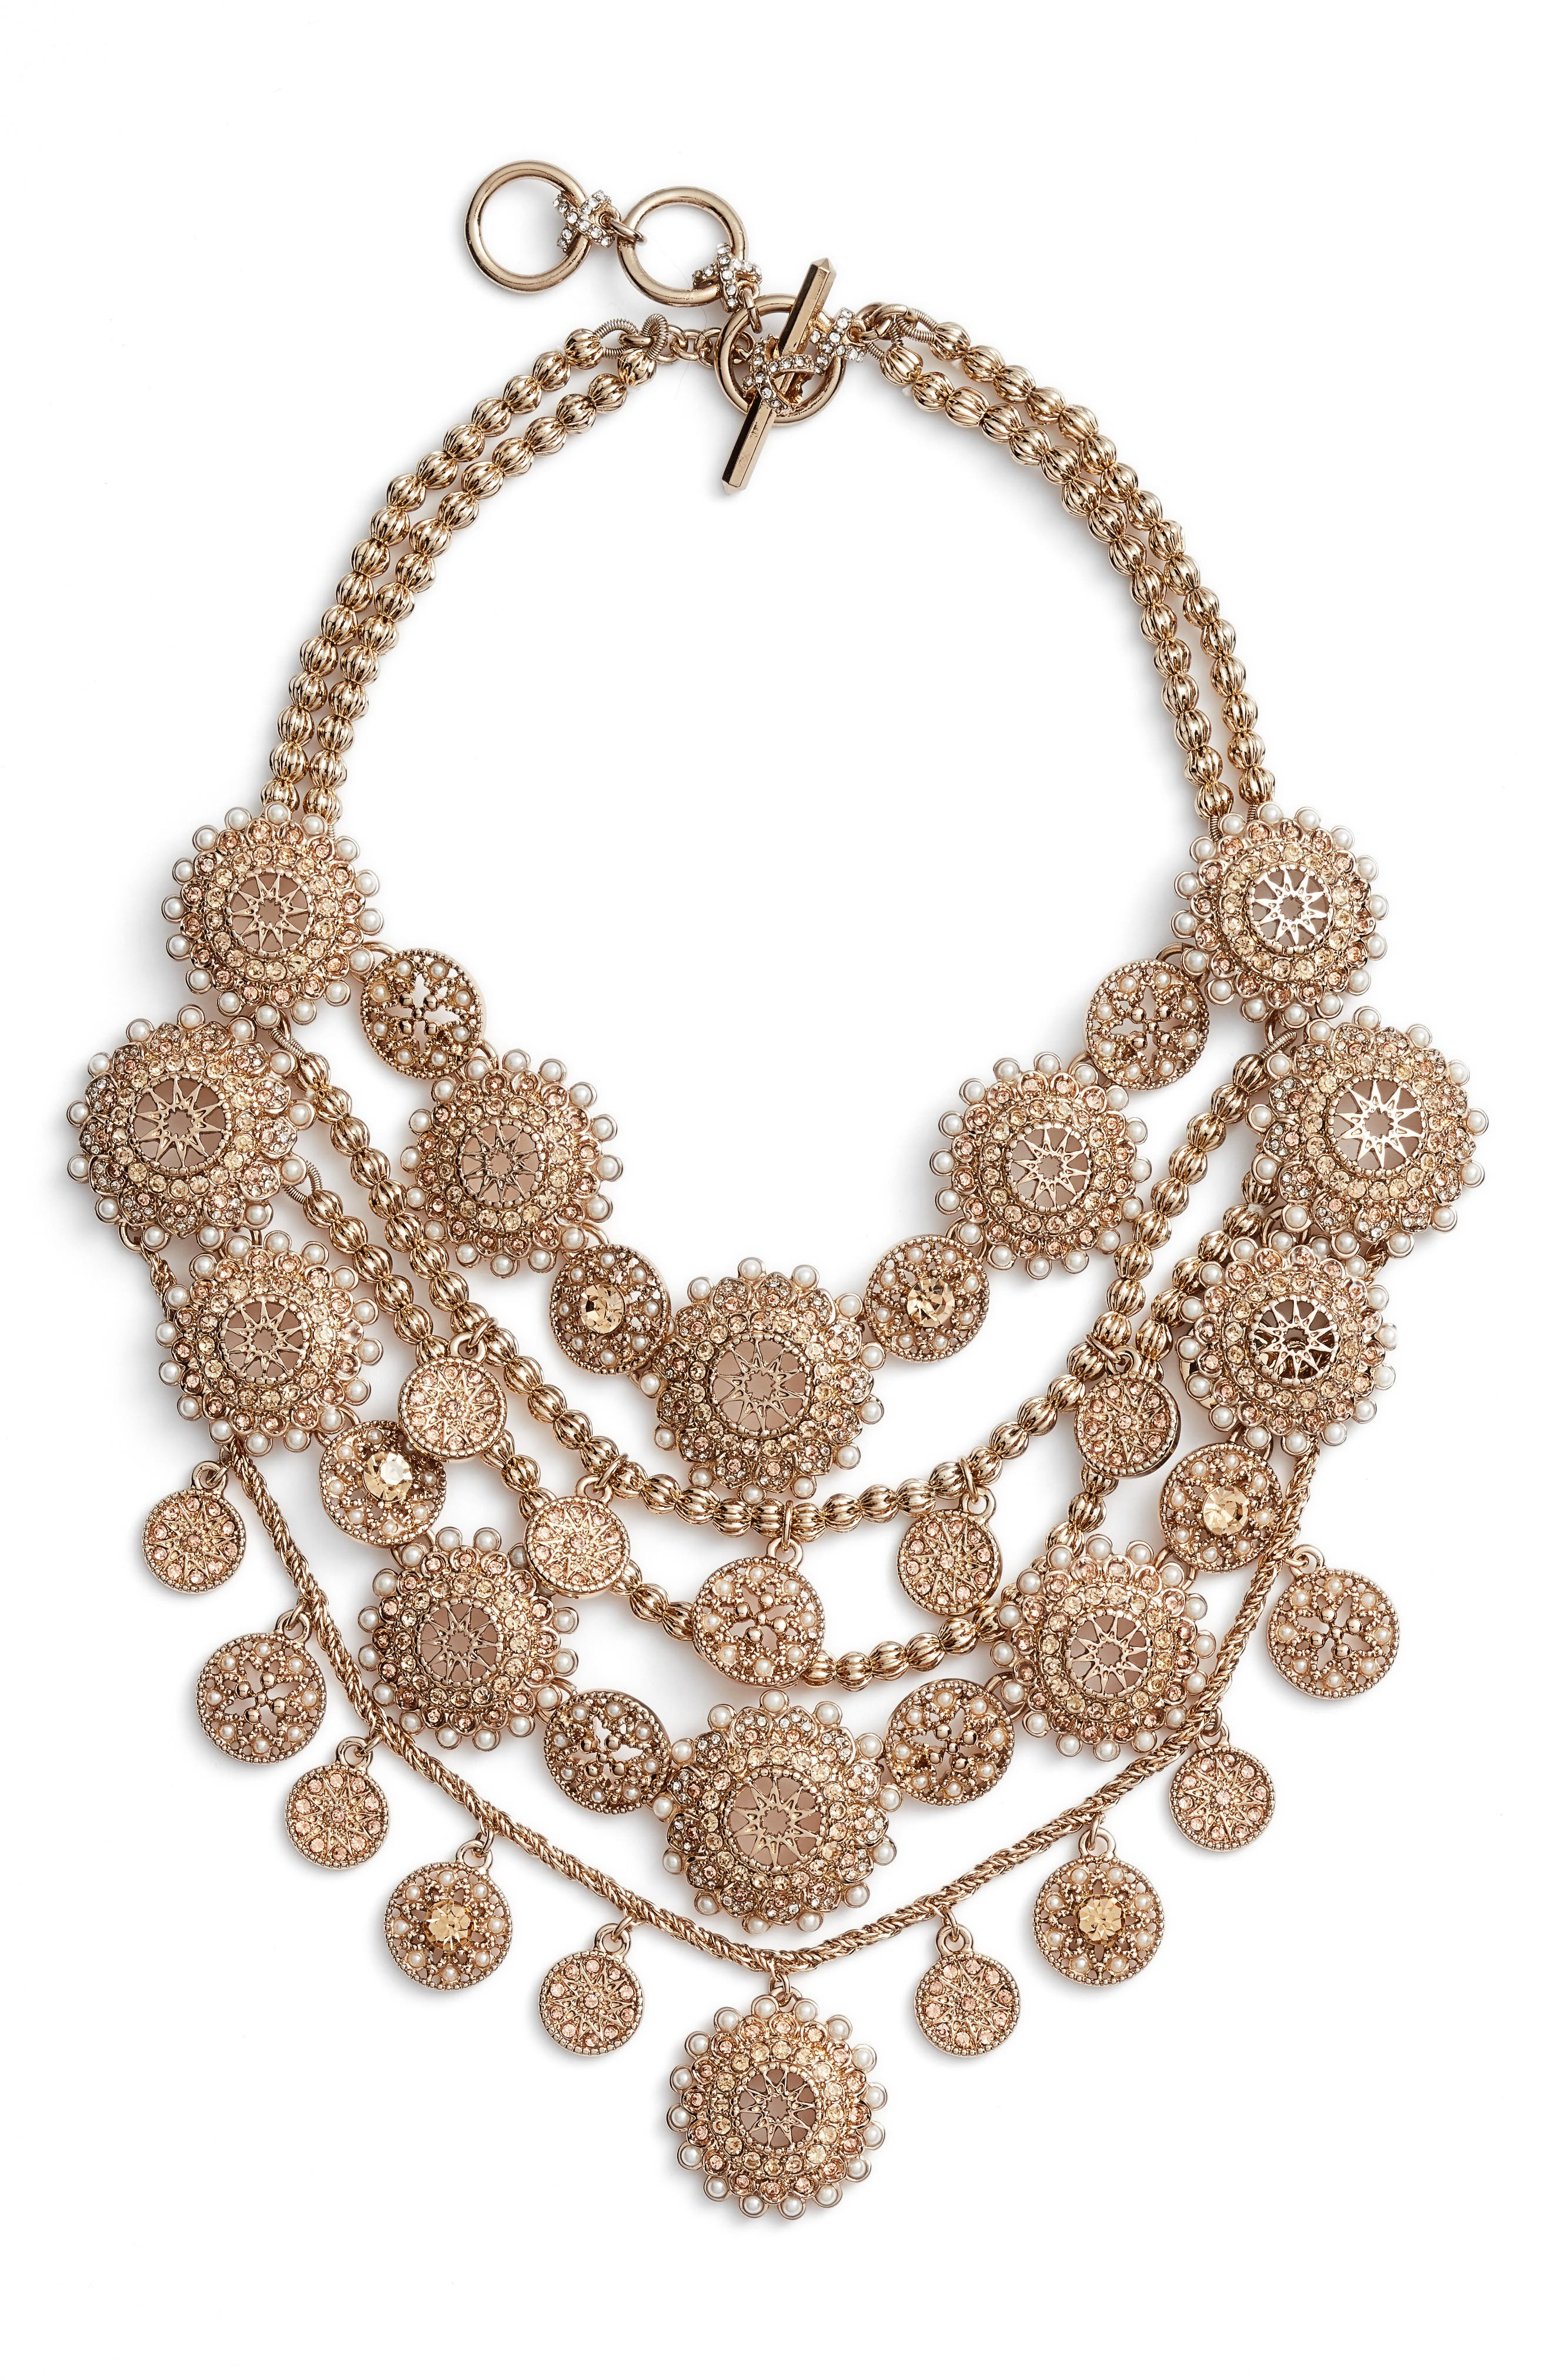 Multirow Collar Necklace,                         Main,                         color, Gold/ Gold Mlt